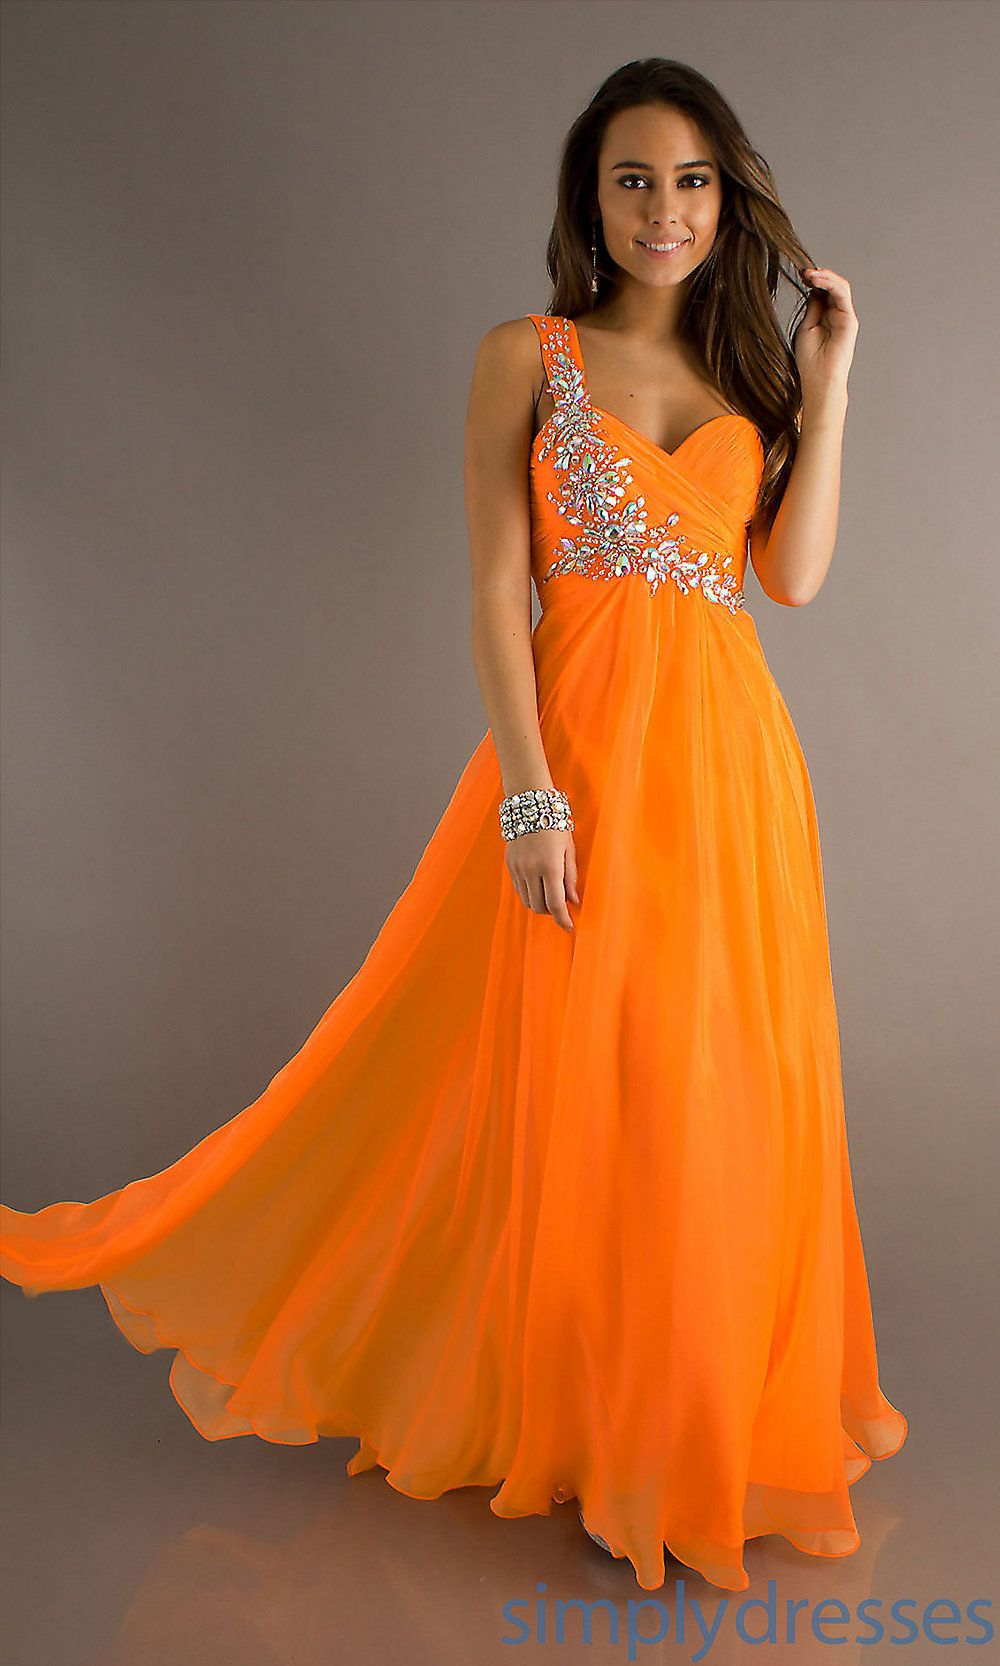 elegant orange bridesmaid dresses orange dress wedding